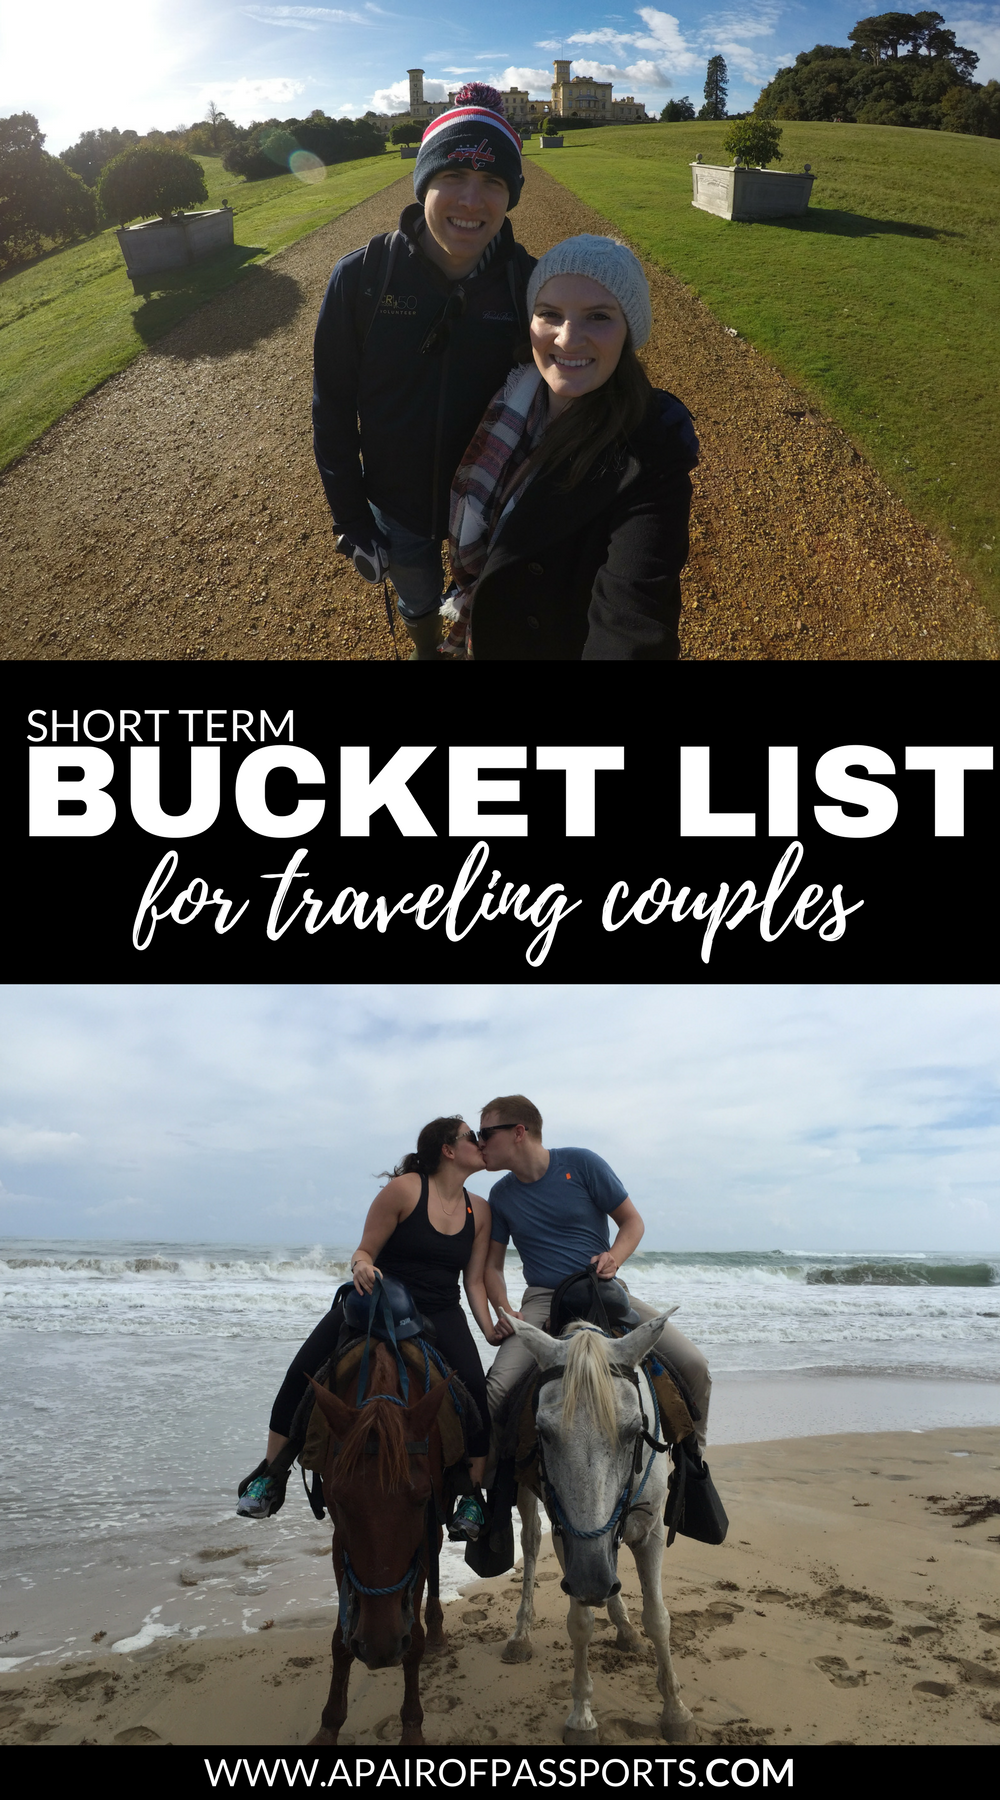 Create your own bucket list for traveling couples. Enjoy travel memories of a lifetime on these awesome trips for couples!